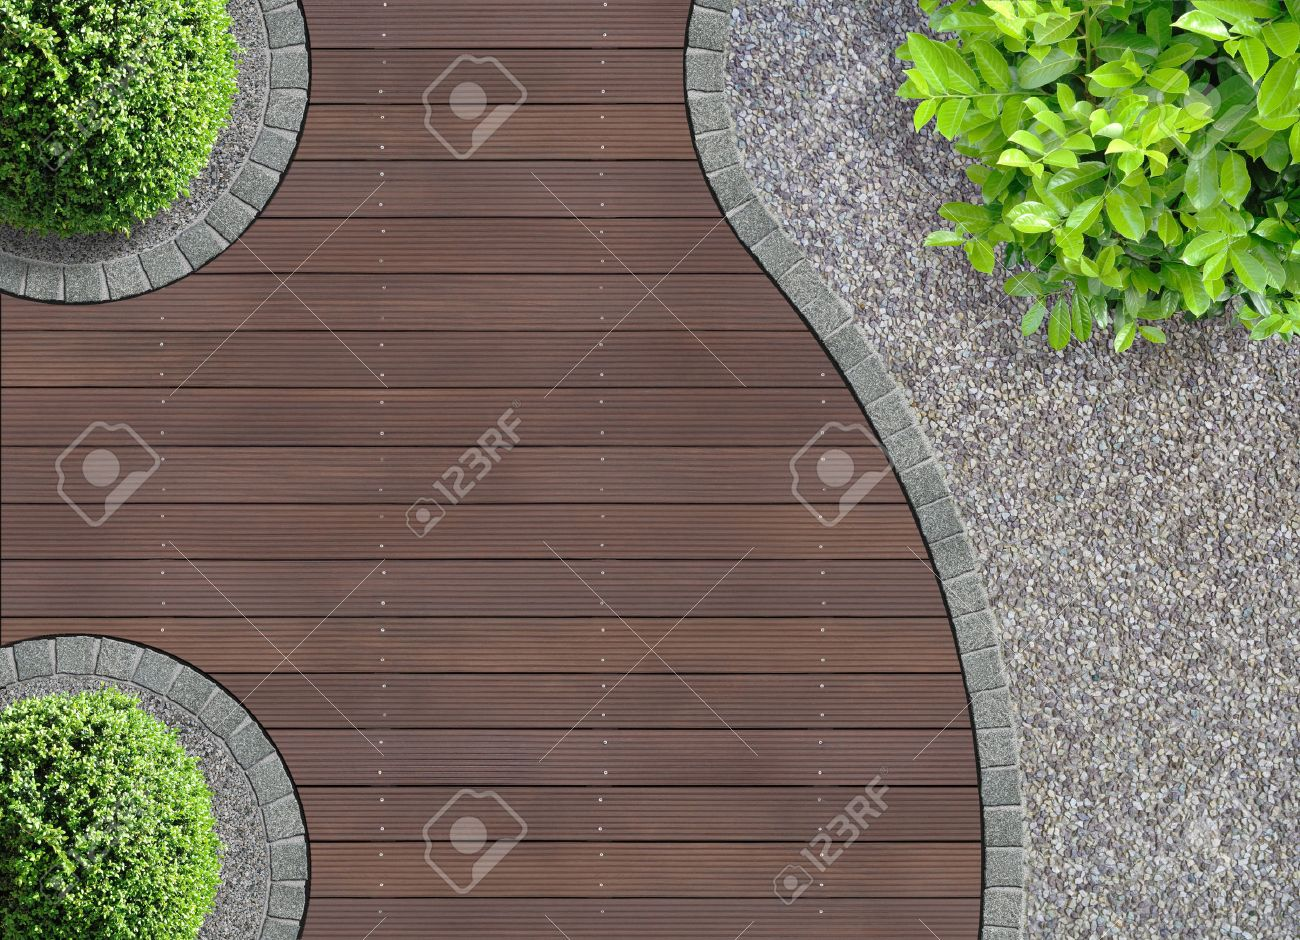 Aesthetic Garden Design Detail Seen From Above Stock Photo, Picture on